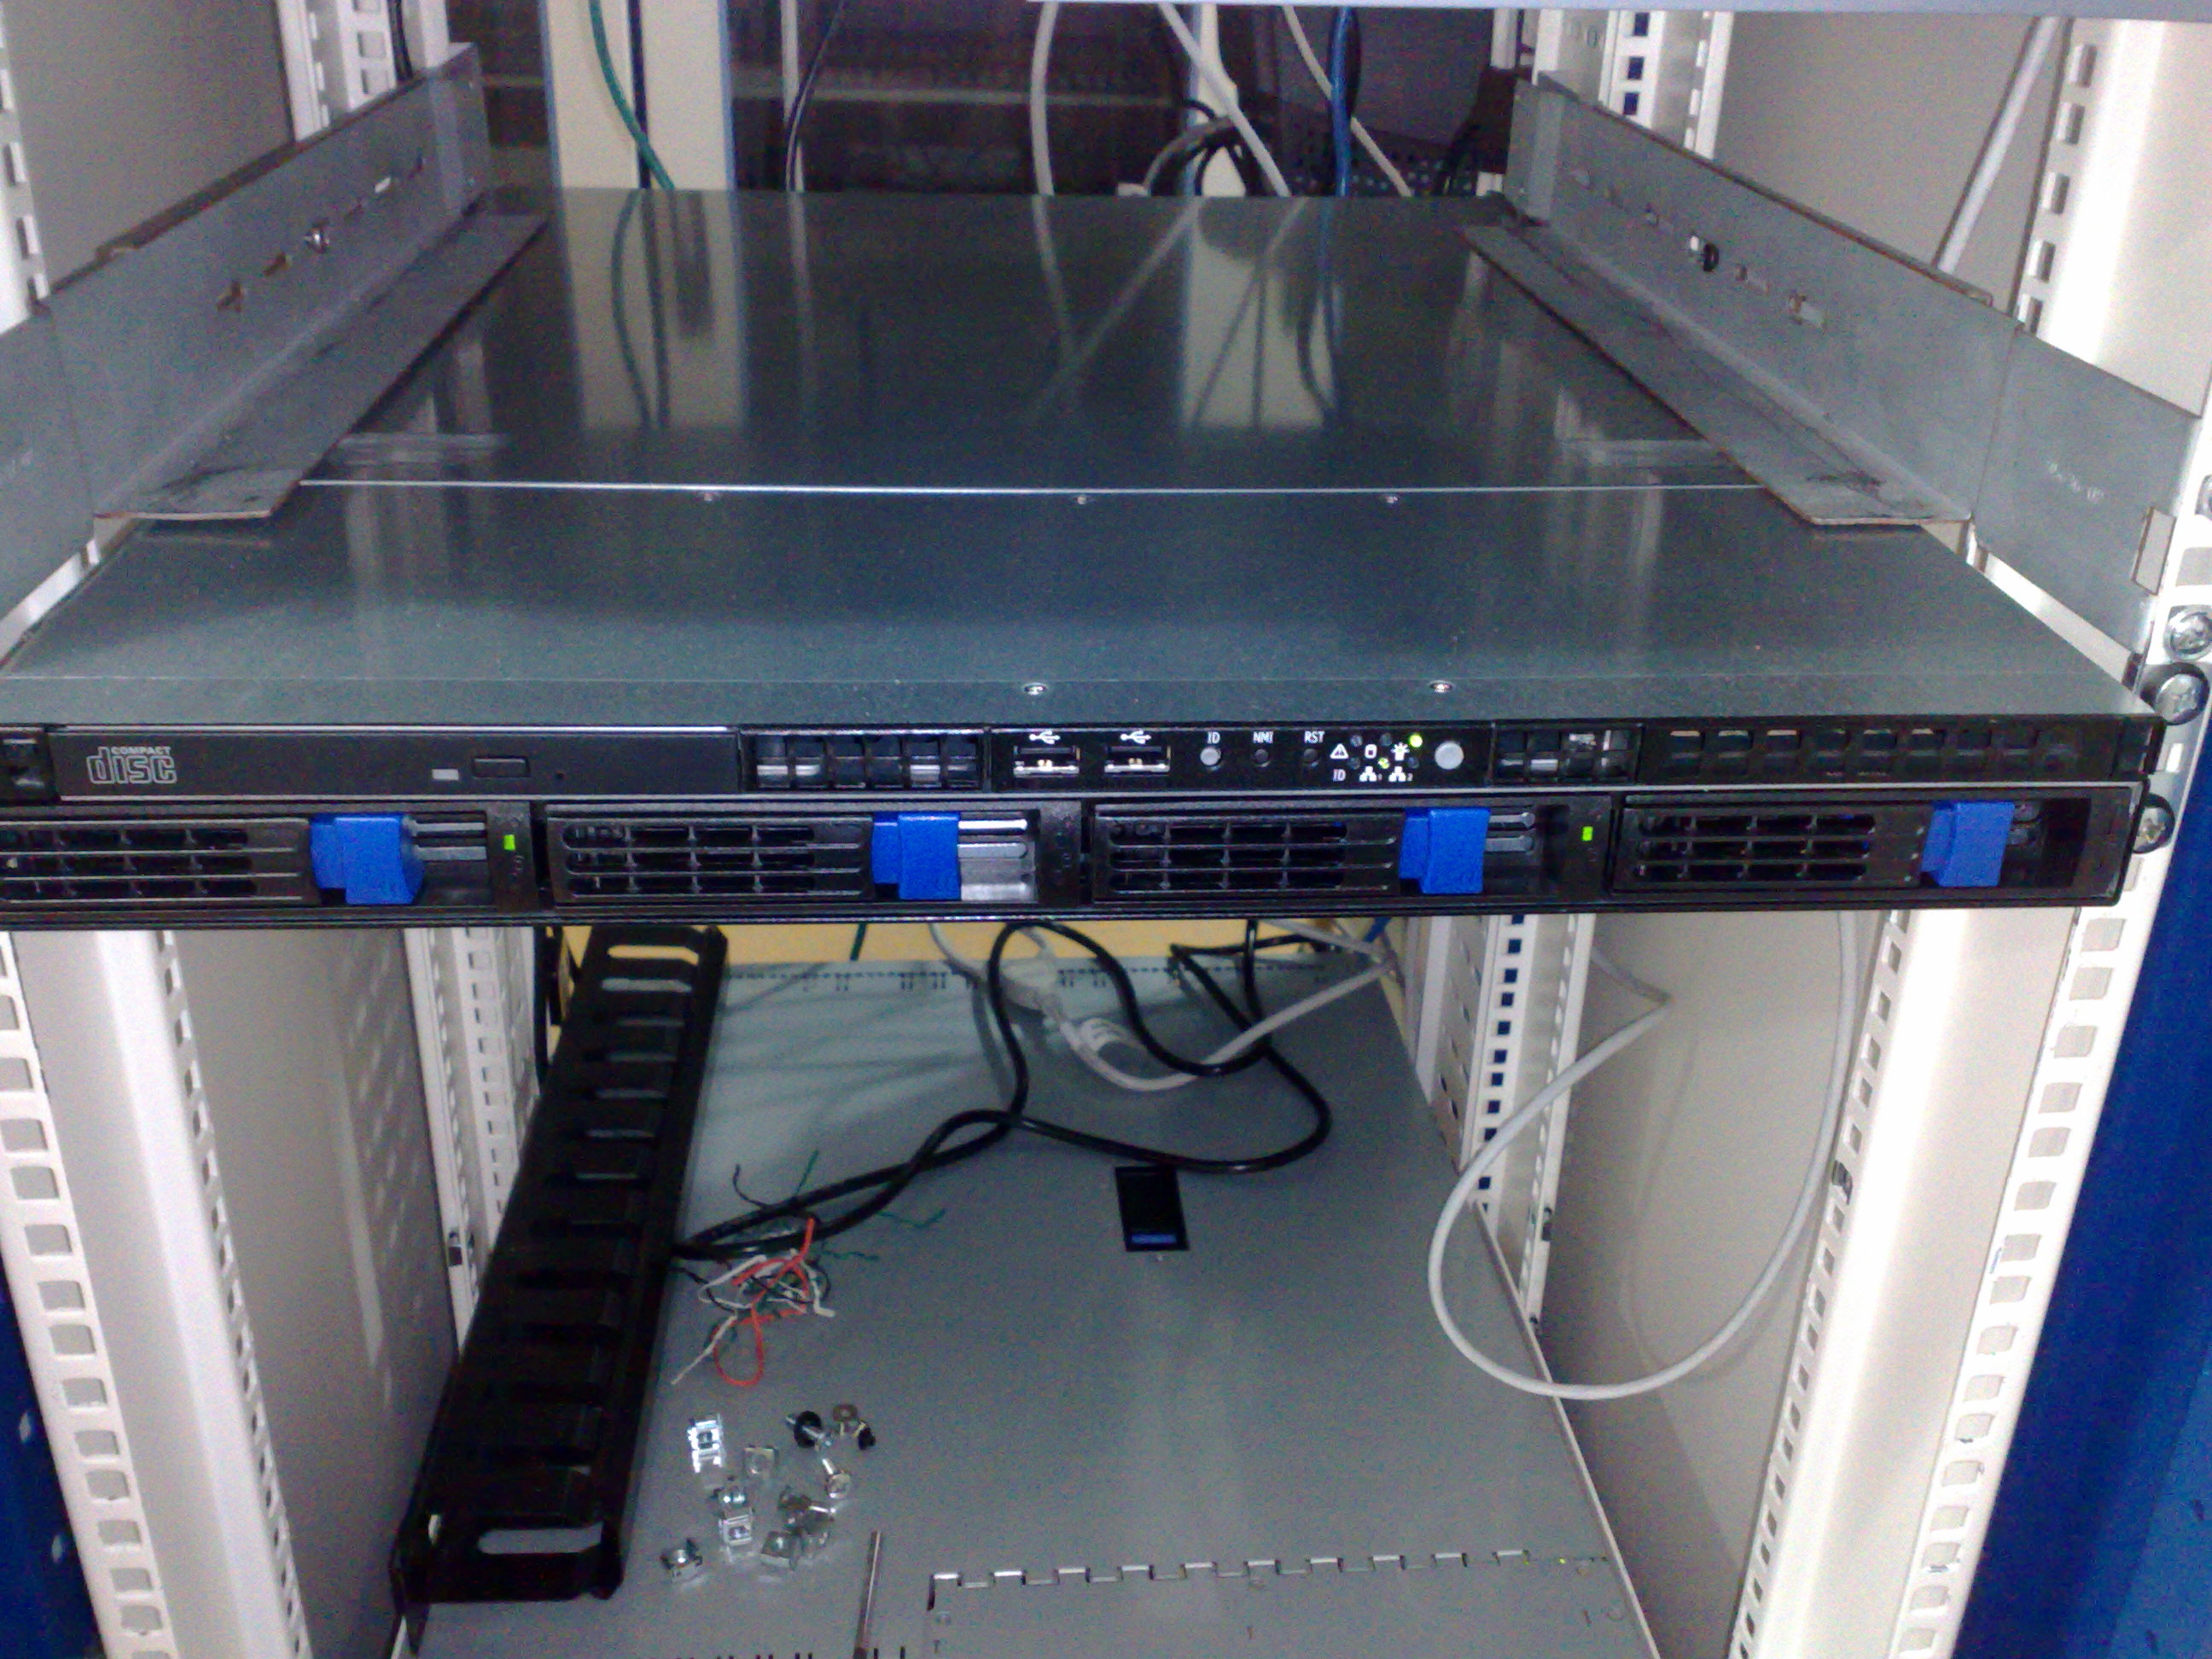 Tyan server at 1-Net rack